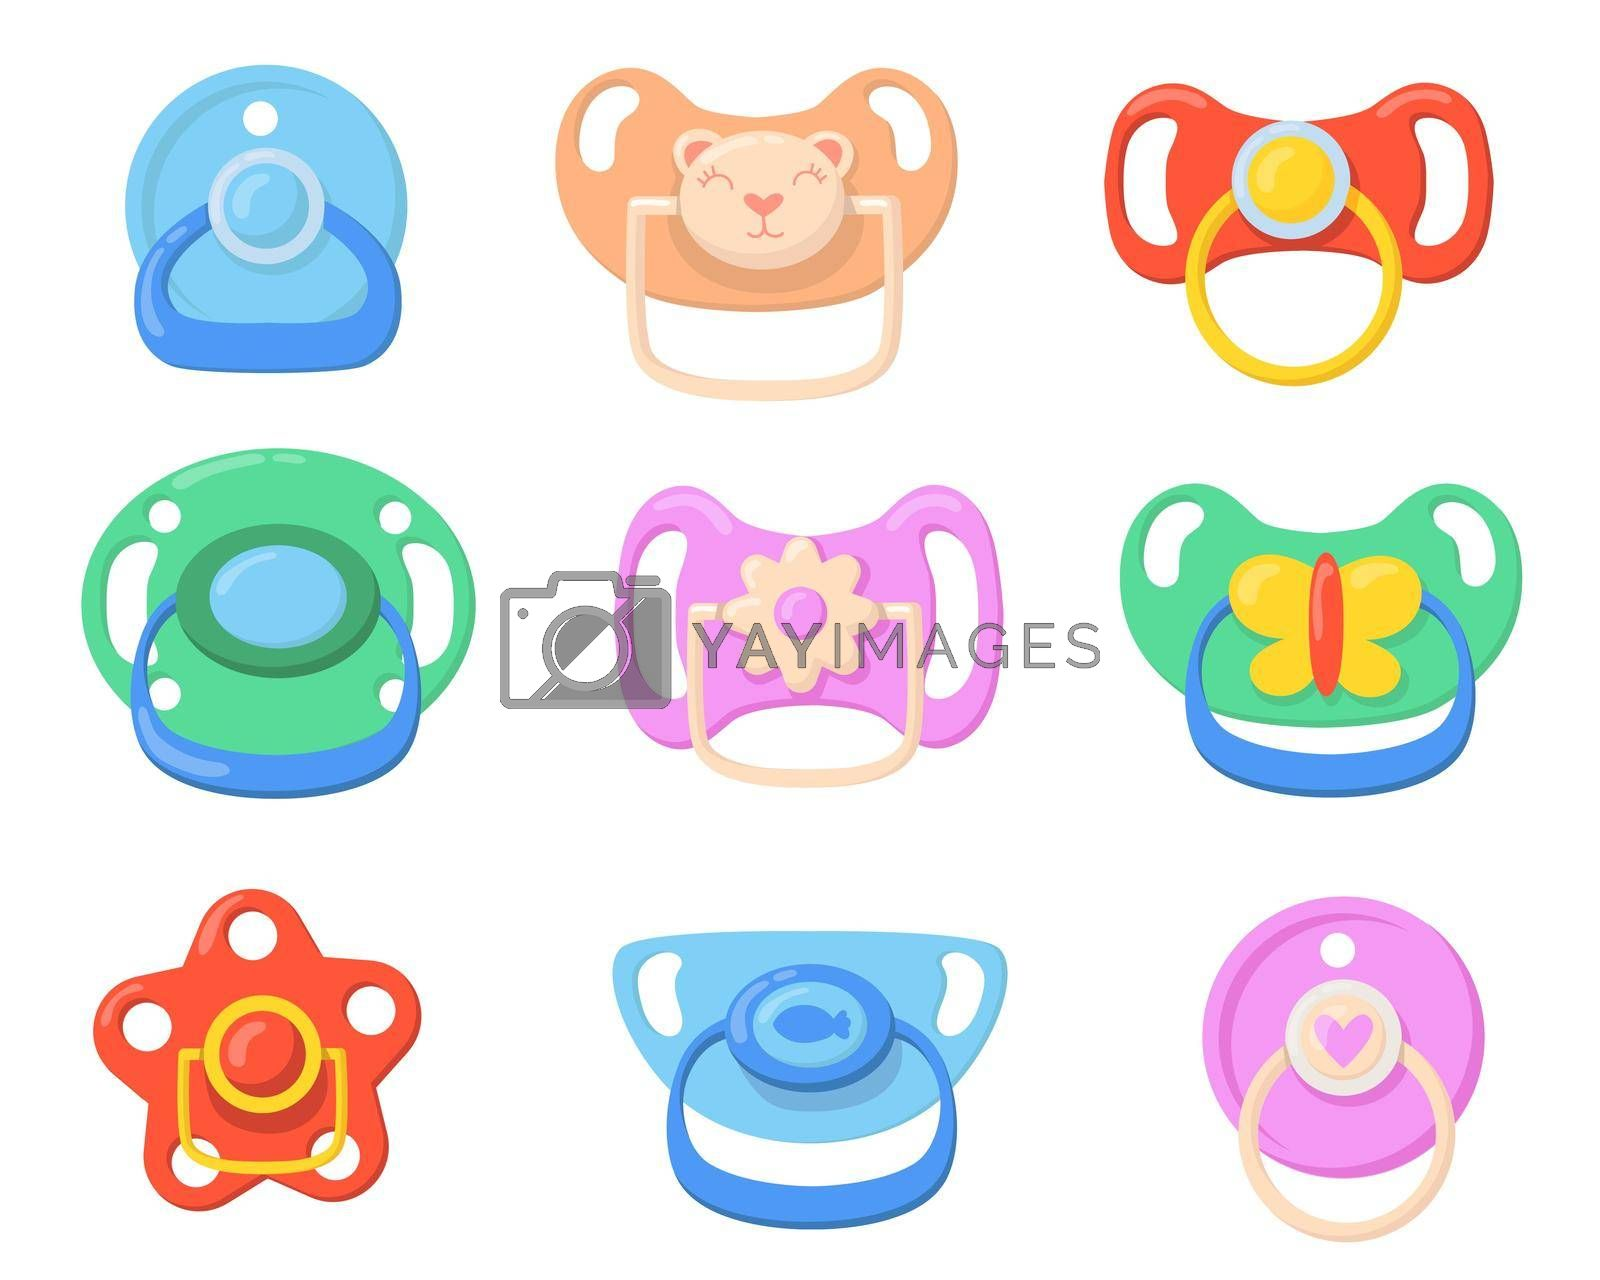 Royalty free image of Pacifiers for babies set by mstjahanara